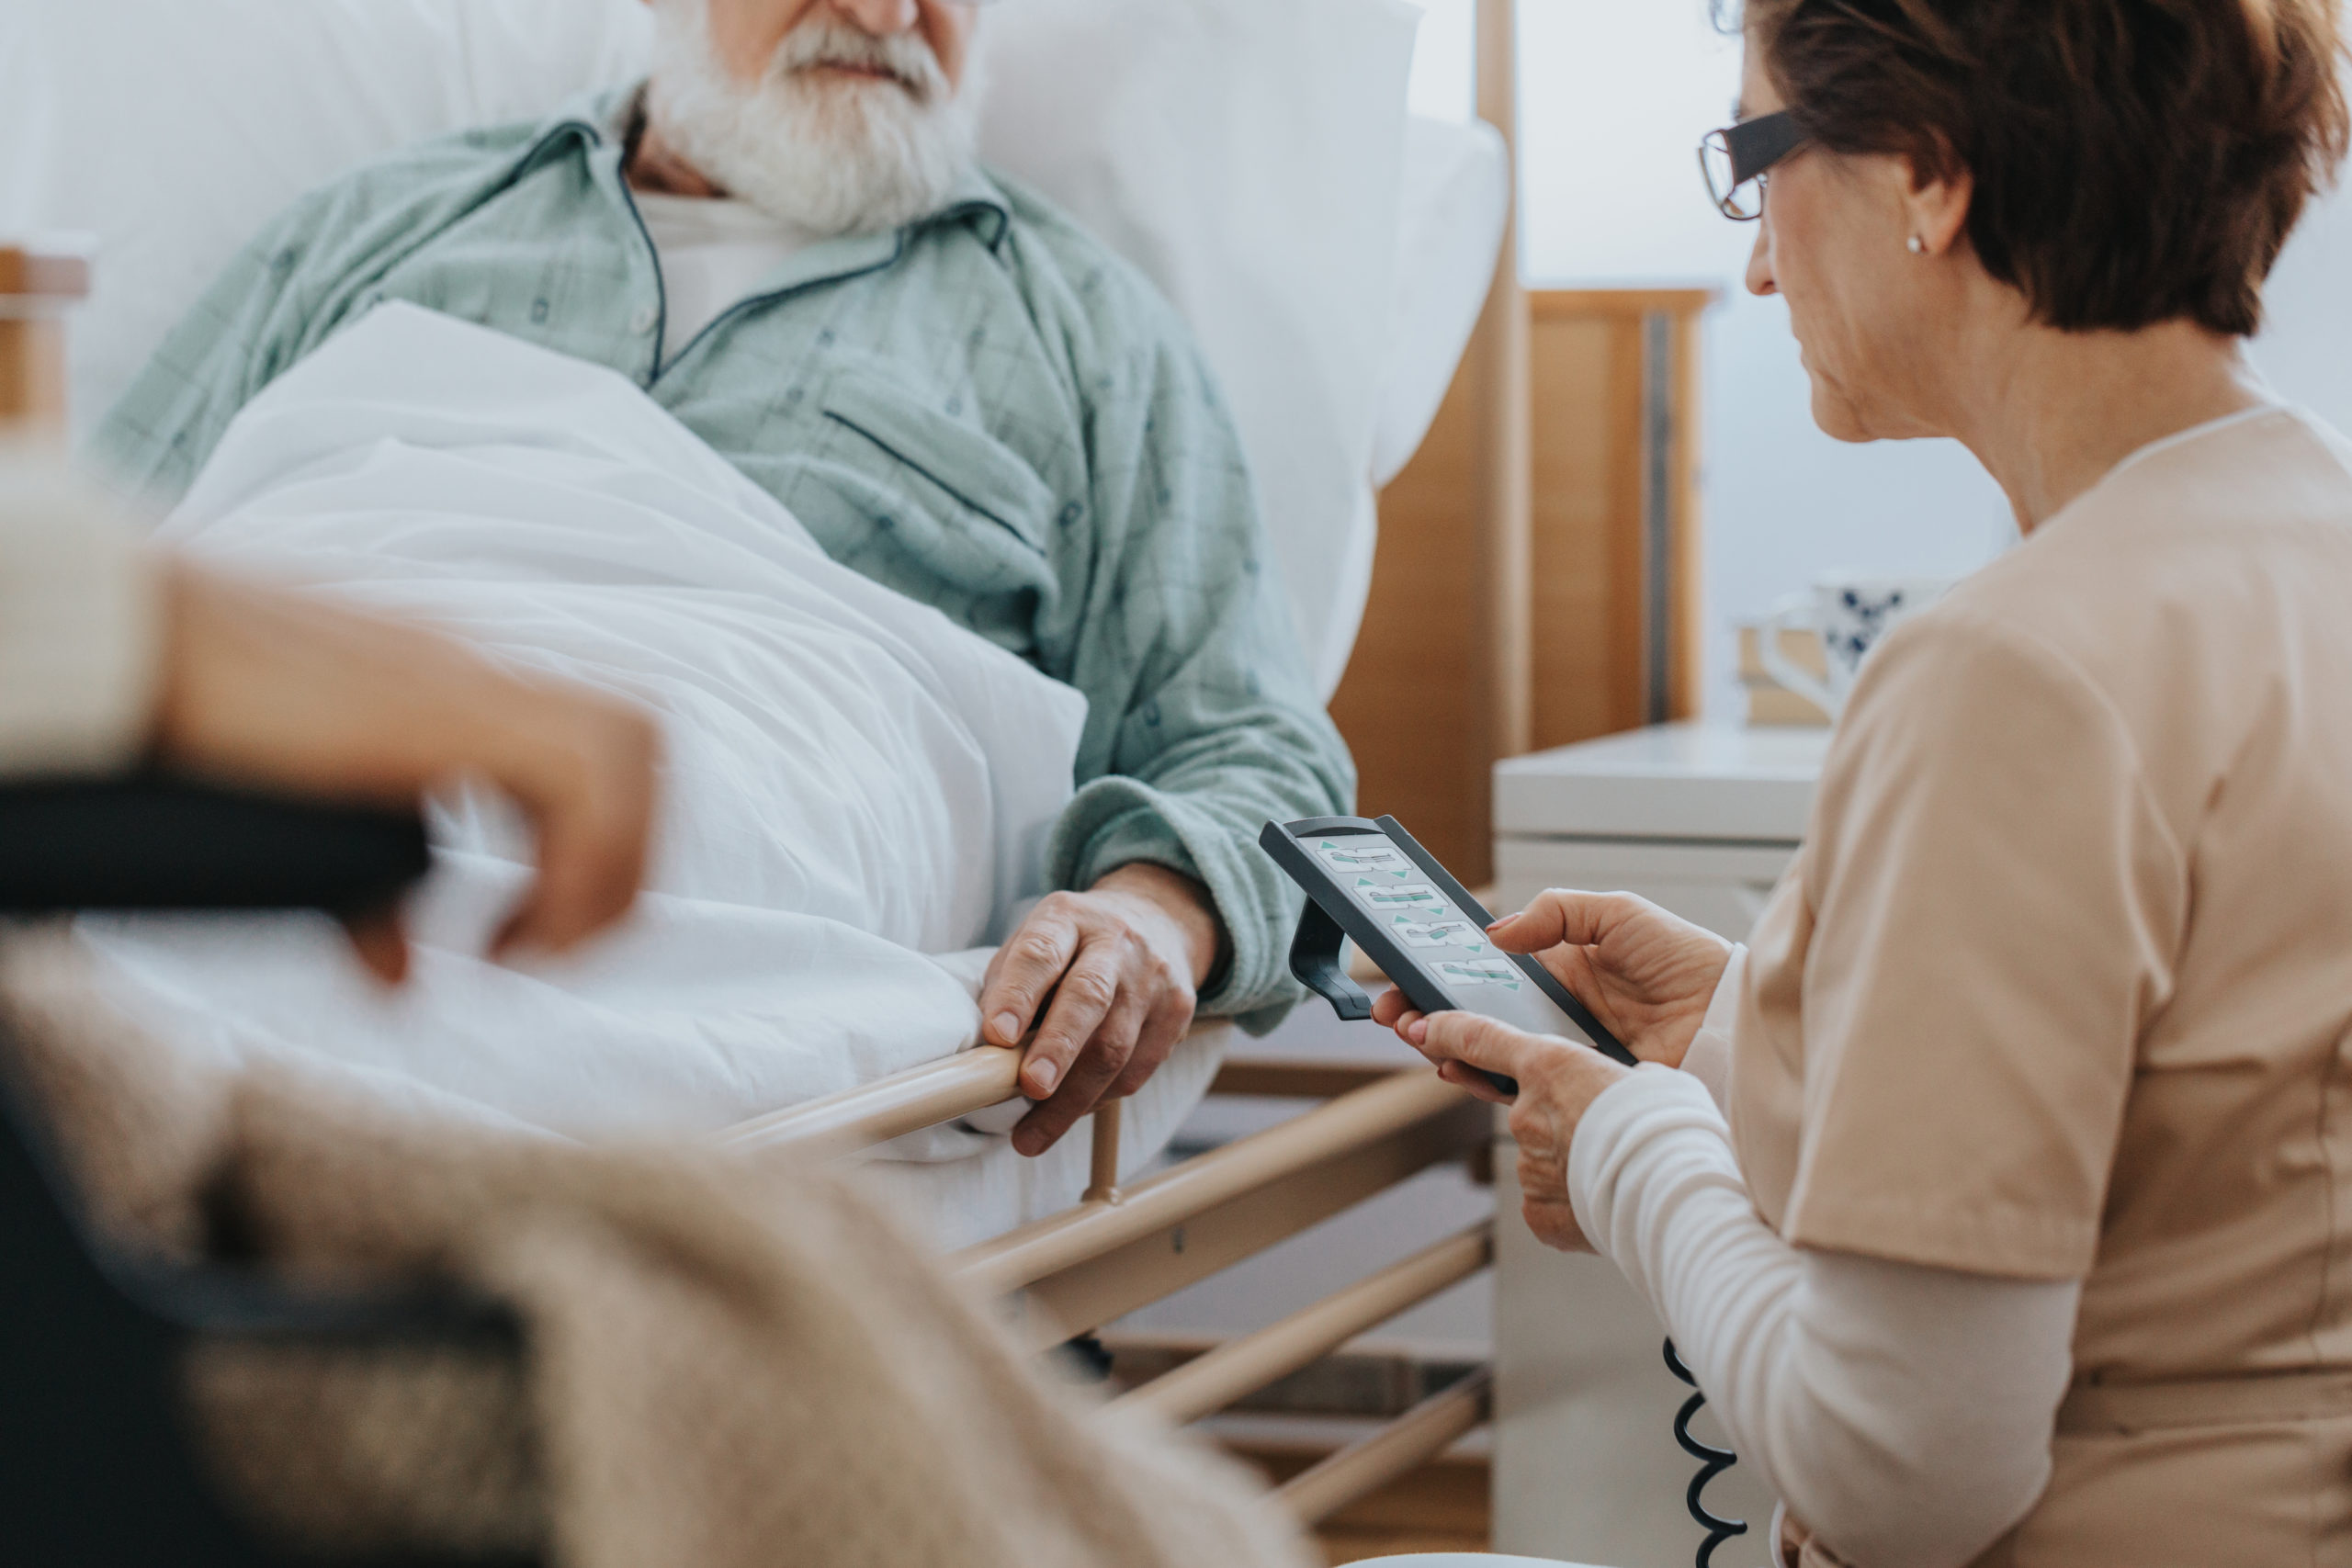 Elder abuse is hard to quantify. It is greatly underreported and much of it goes undetected. However, some research suggests that 10% of older adults have experienced abuse, including sexual, physical, and psychological abuse. Much of this abuse is perpetrated by family members, but nursing home abuse is also a significant problem. If your loved one is in a nursing home and you suspect that their caregivers are abusing them, you may want to consider contacting an attorney. Read on to learn more about finding an effective nursing home abuse lawyer. Document Abuse If you suspect that your loved one is being abused by their caregivers, document anything that leads you to suspect this. Signs to look for include: Bruises and unexplained wounds Bedsores Malnutrition and dehydration Bruising around the genitals Unexplained infections or illnesses Physical discomfort Depression and withdrawal If your loved one has unexplained injuries, be sure to document them and take pictures if possible. Keep a detailed record of everything that is happening. Try to visit your loved one at different times to see how they are being cared for on different shifts. Your attorney will also investigate the abuse, but if you have this information, you will make their job easier and help them know where to start. Look for Attorneys Who Specialize in Nursing Home Abuse If you suspect abuse and have documentation, research attorneys who specialize in nursing home abuse. There are many general practice firms who may take on these cases, but not all personal injury cases are created equal. An experienced abuse attorney understands the state laws and standards pertaining to nursing homes and assisted living facilities and knows how to negotiate with nursing home and their insurance companies. Consider Their Track Record Not only do you want an experienced nursing home abuse lawyer, but you also want one who is successful at winning their cases. When you consider a potential attorney, research their t